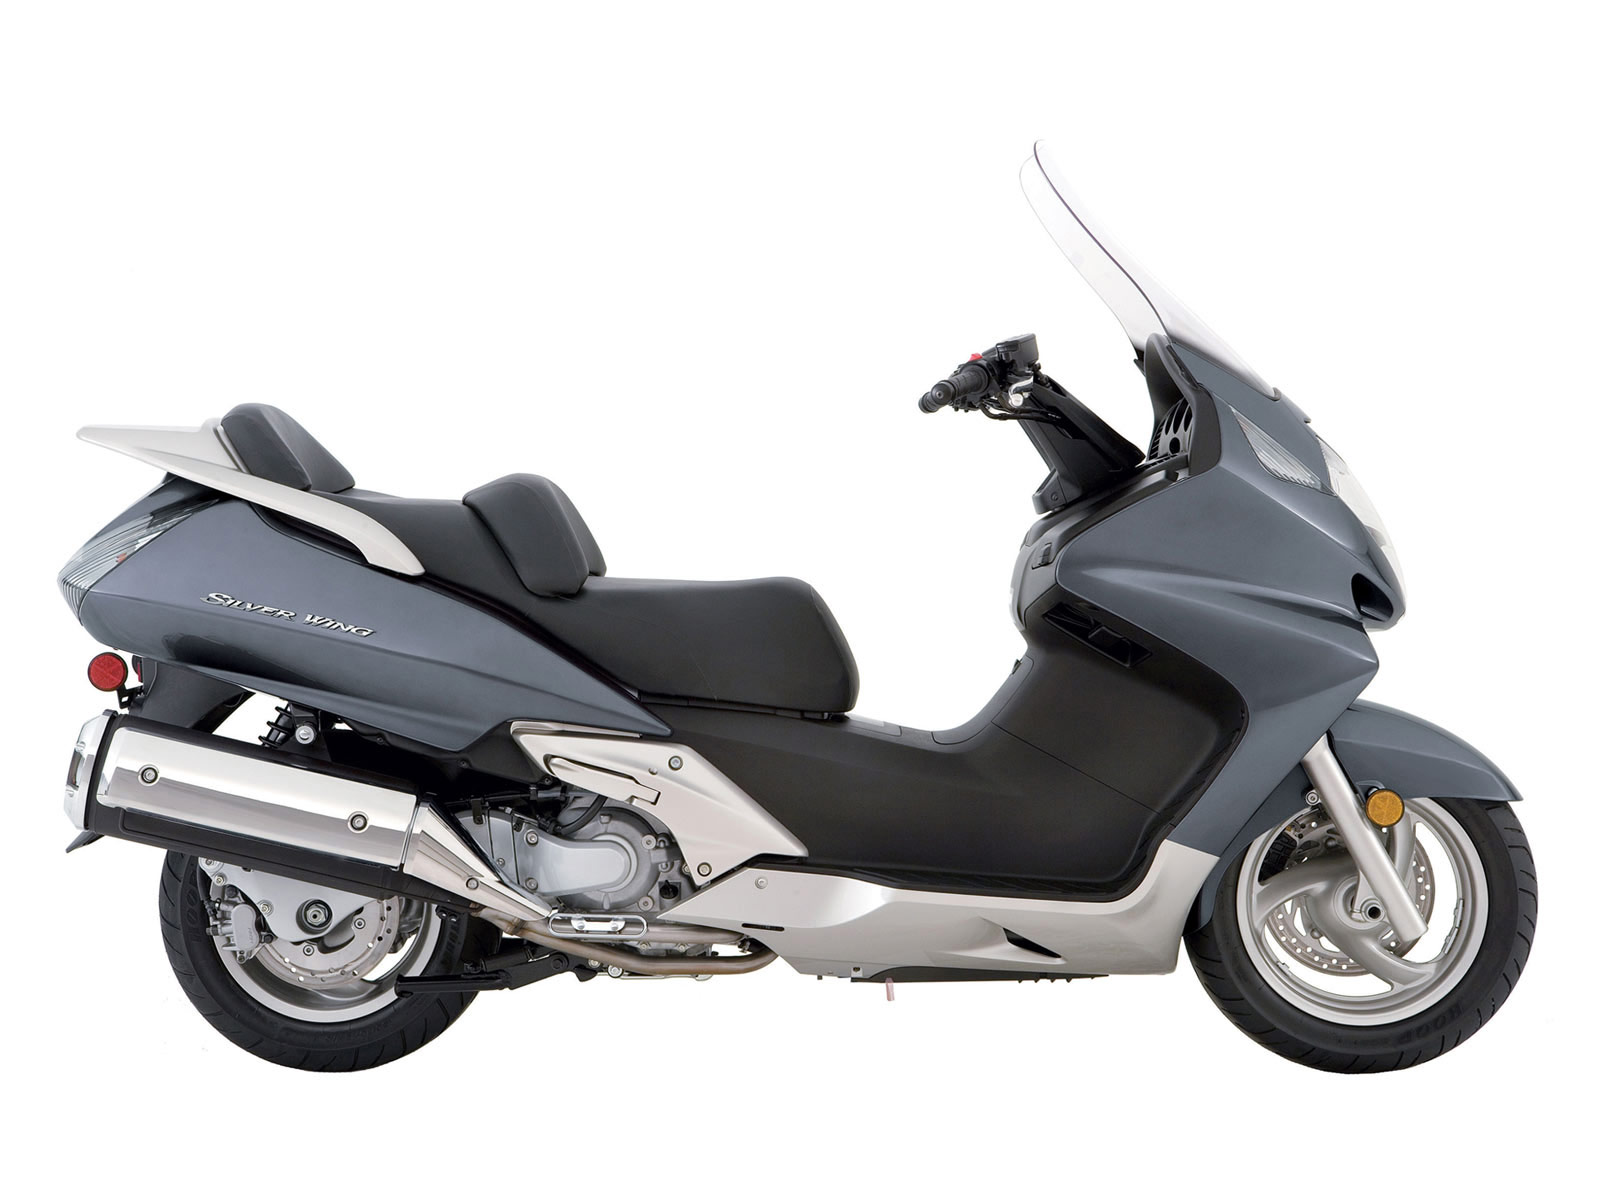 2007 Honda Silver Wing Scooter Accident Lawyers